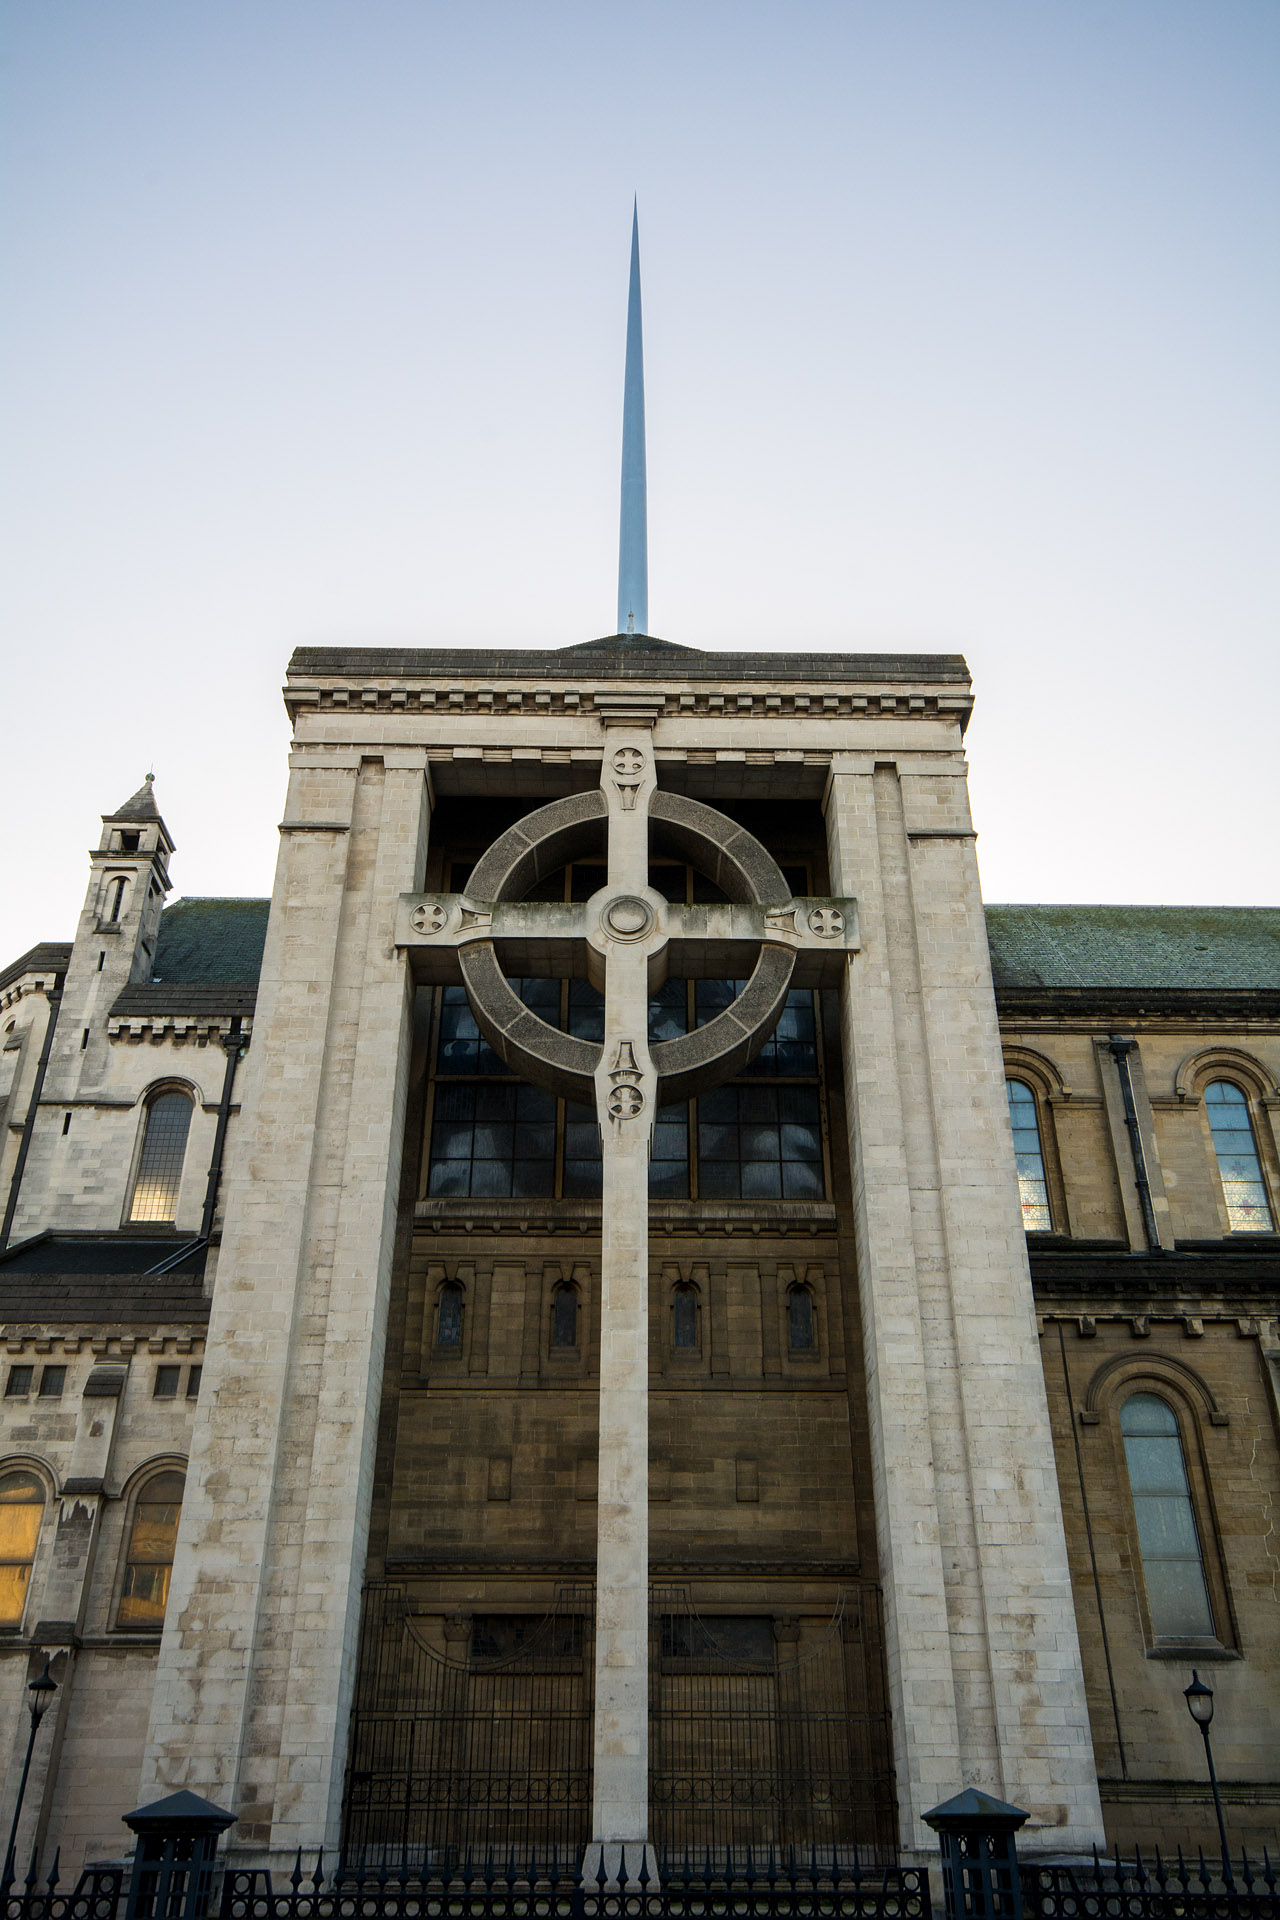 Celtic Cross & Spire of Hope (St. Anne's)